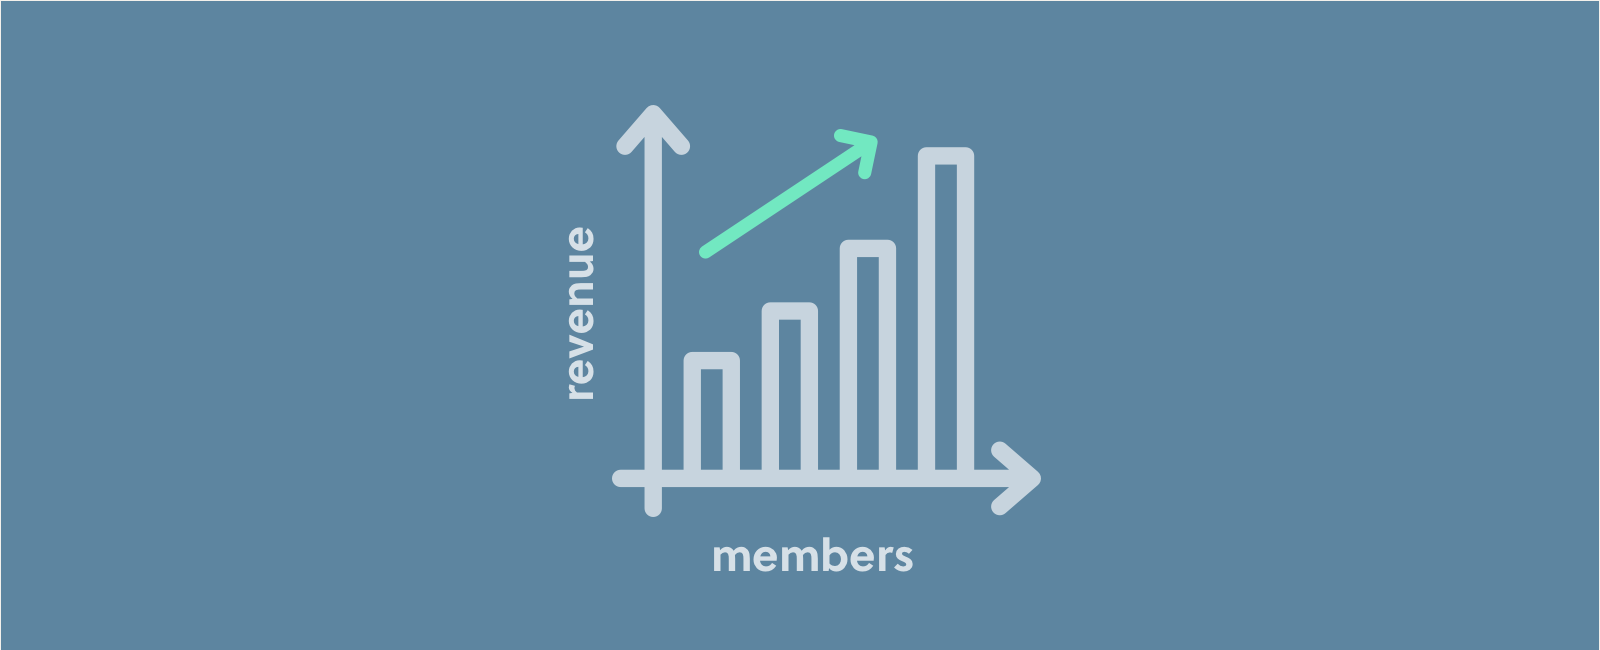 membership-graph.png